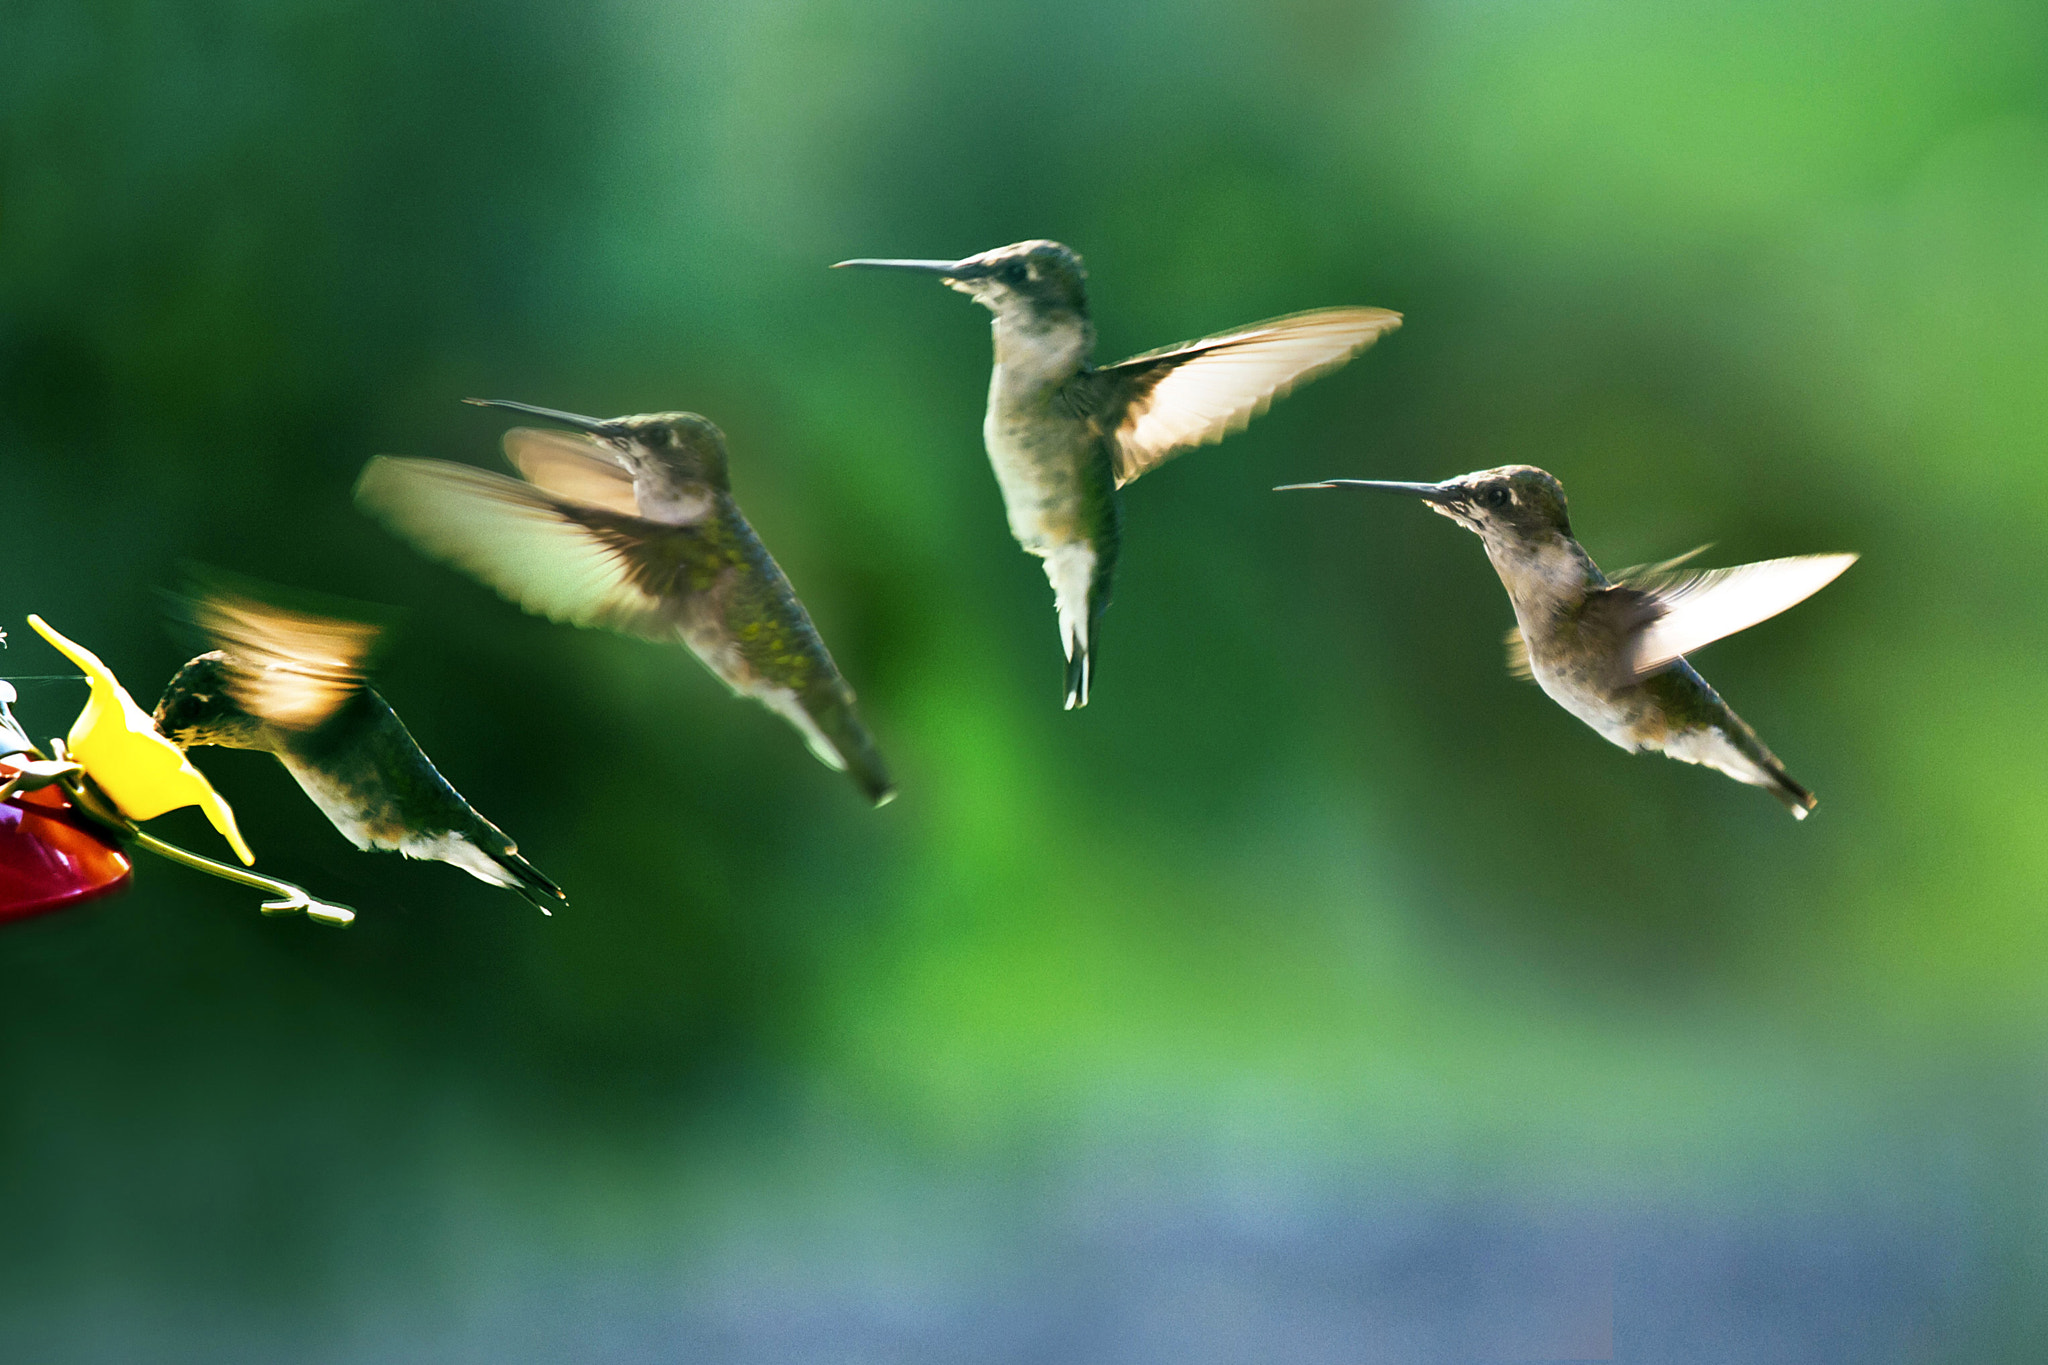 Photograph Flight of the Hummingbird by Jo Hendley on 500px